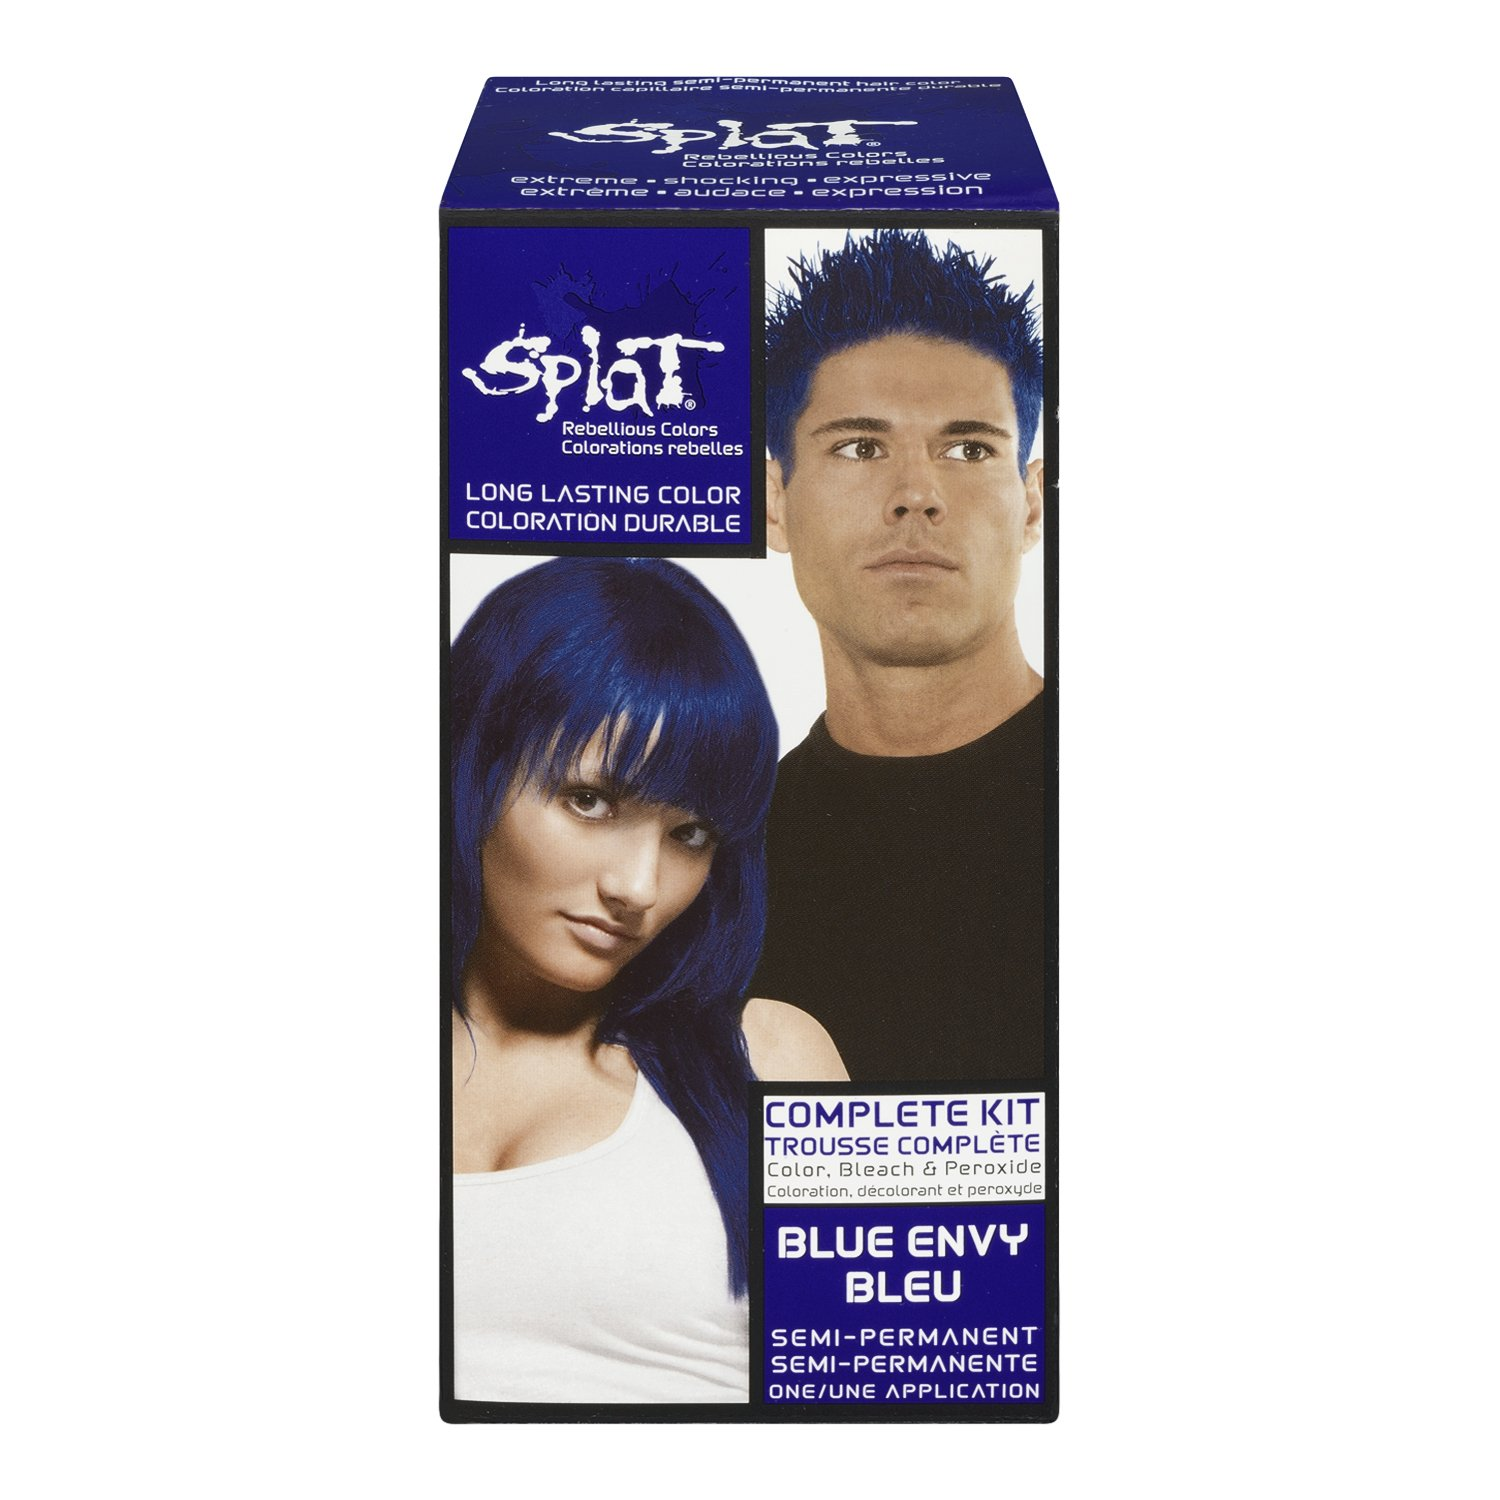 SPLAT REBELLIOUS COLORS Semi Permanent COMPLETE KIT 1 App HAIR DYE – *Pick Color